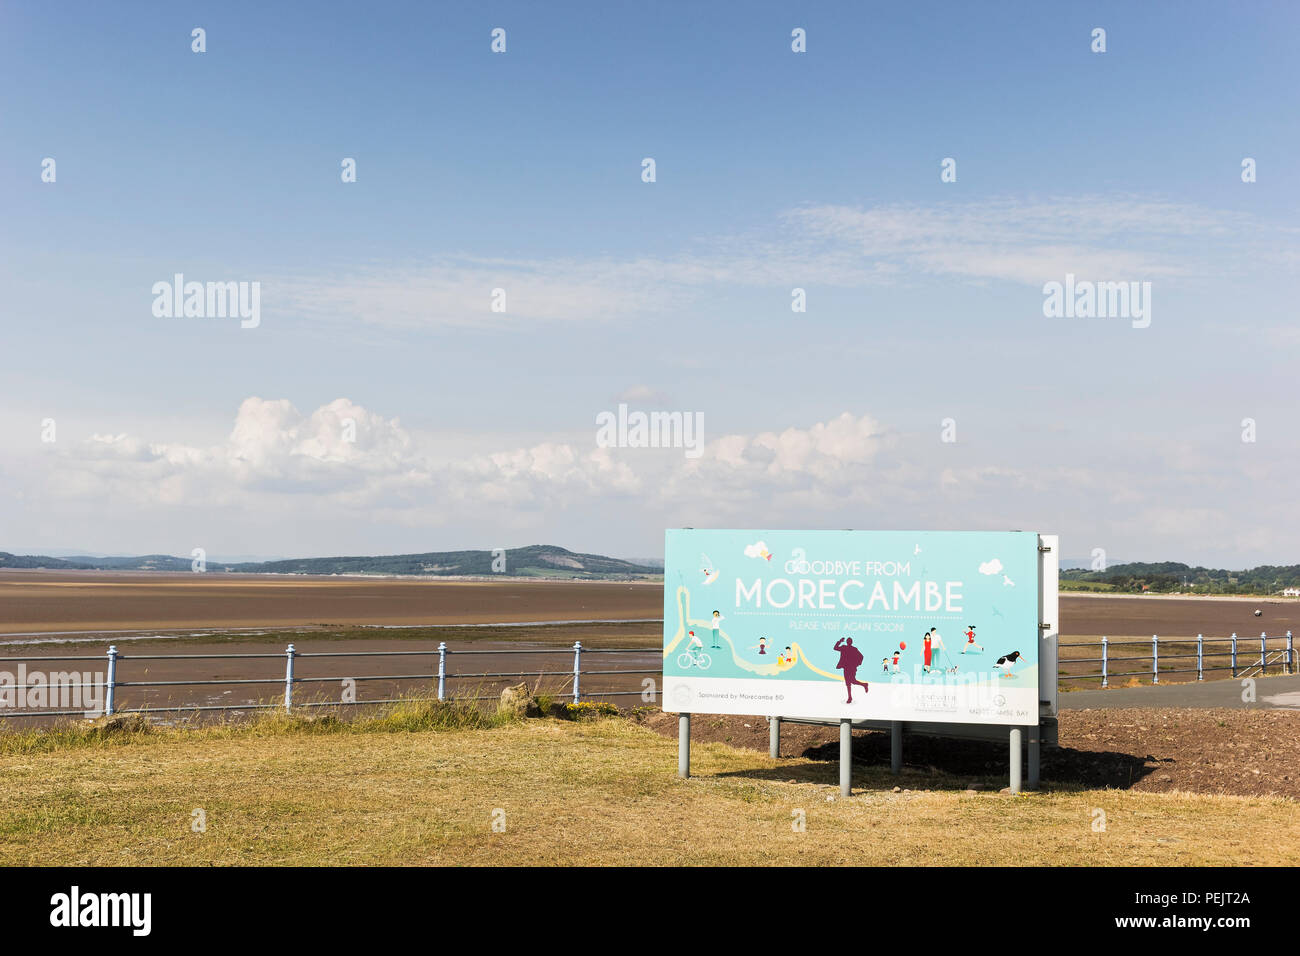 Morecambe sign at the seaside resort in Lancashire, UK - Stock Image